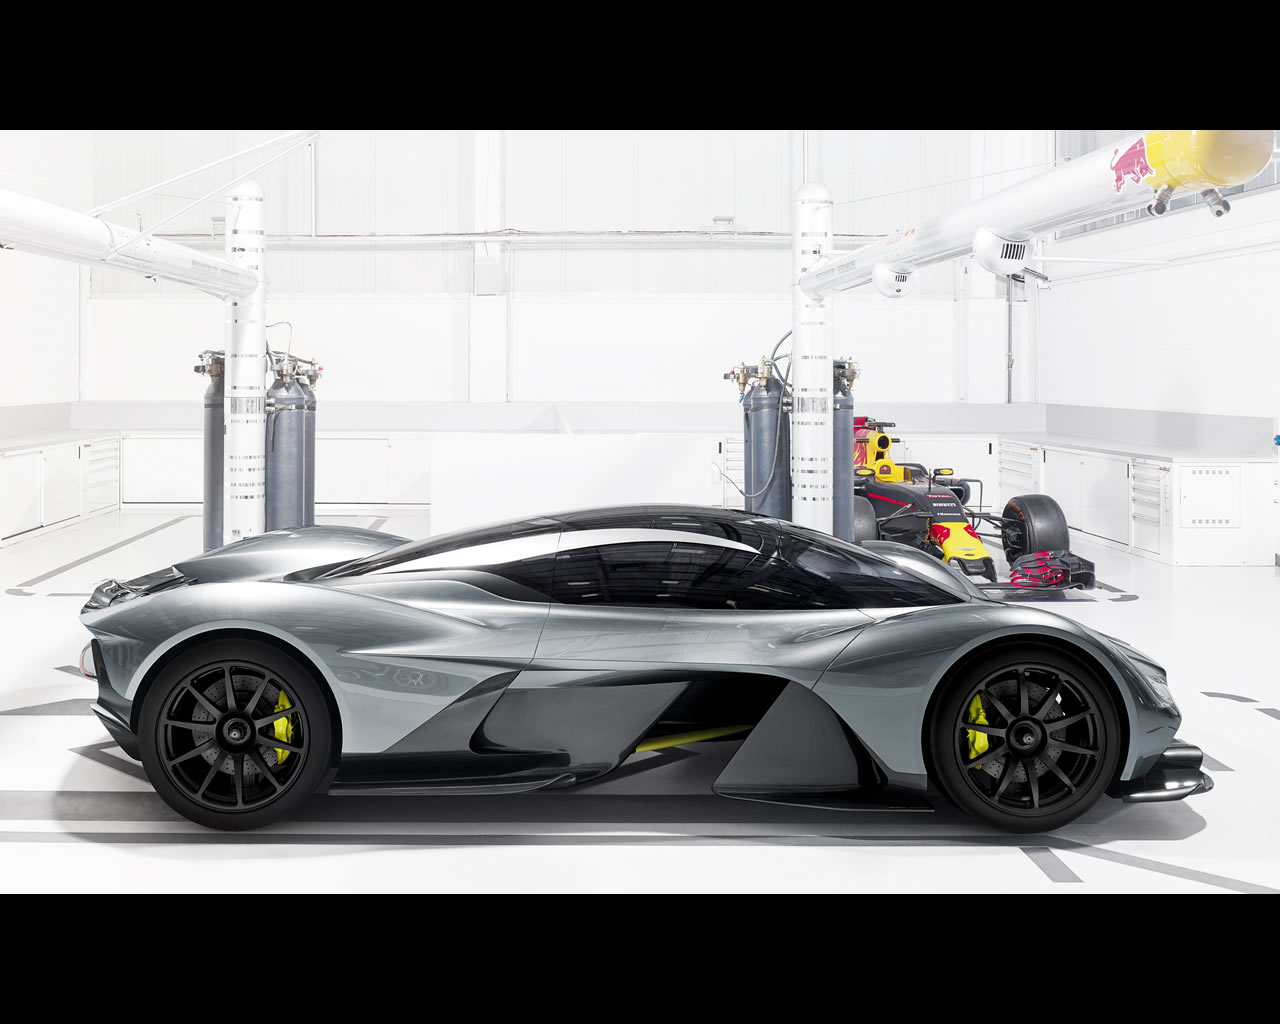 aston martin and red bull concept 2016 am rb 001 hyper car. Black Bedroom Furniture Sets. Home Design Ideas